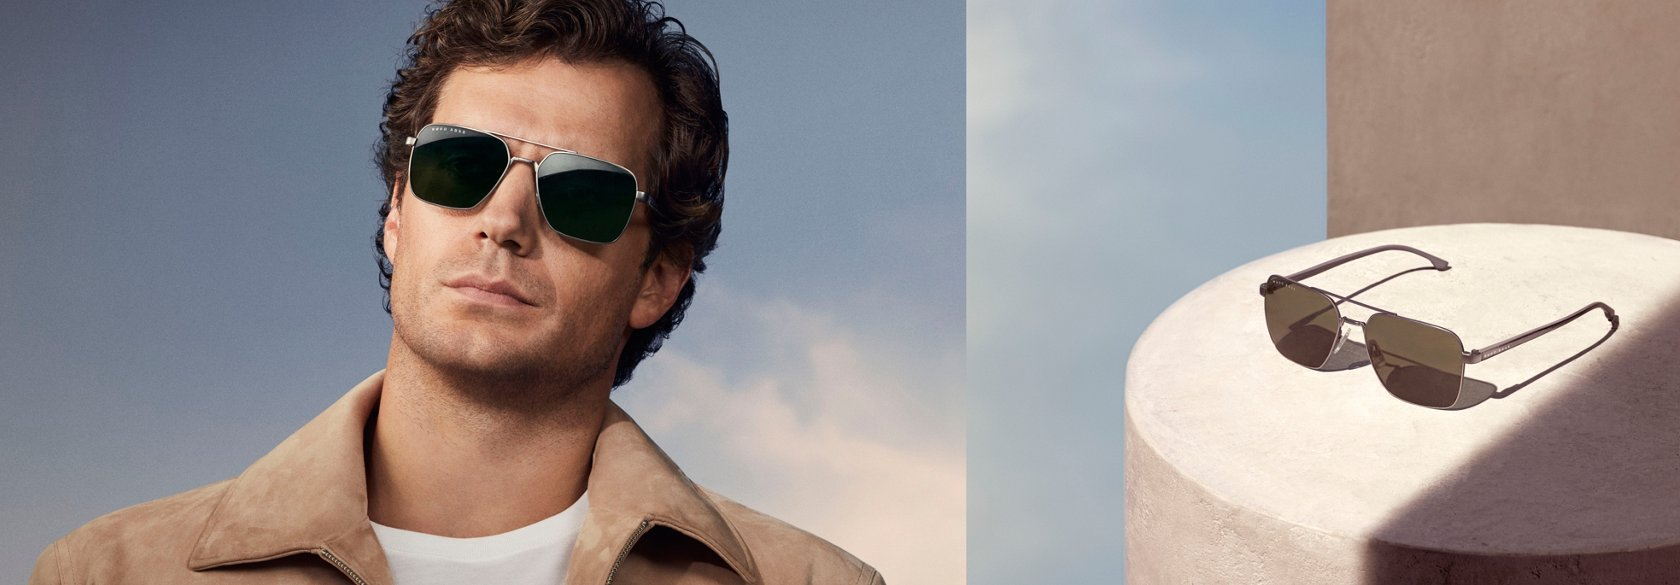 313361507b The new BOSS Eyewear collection featuring actor Henry Cavill ...